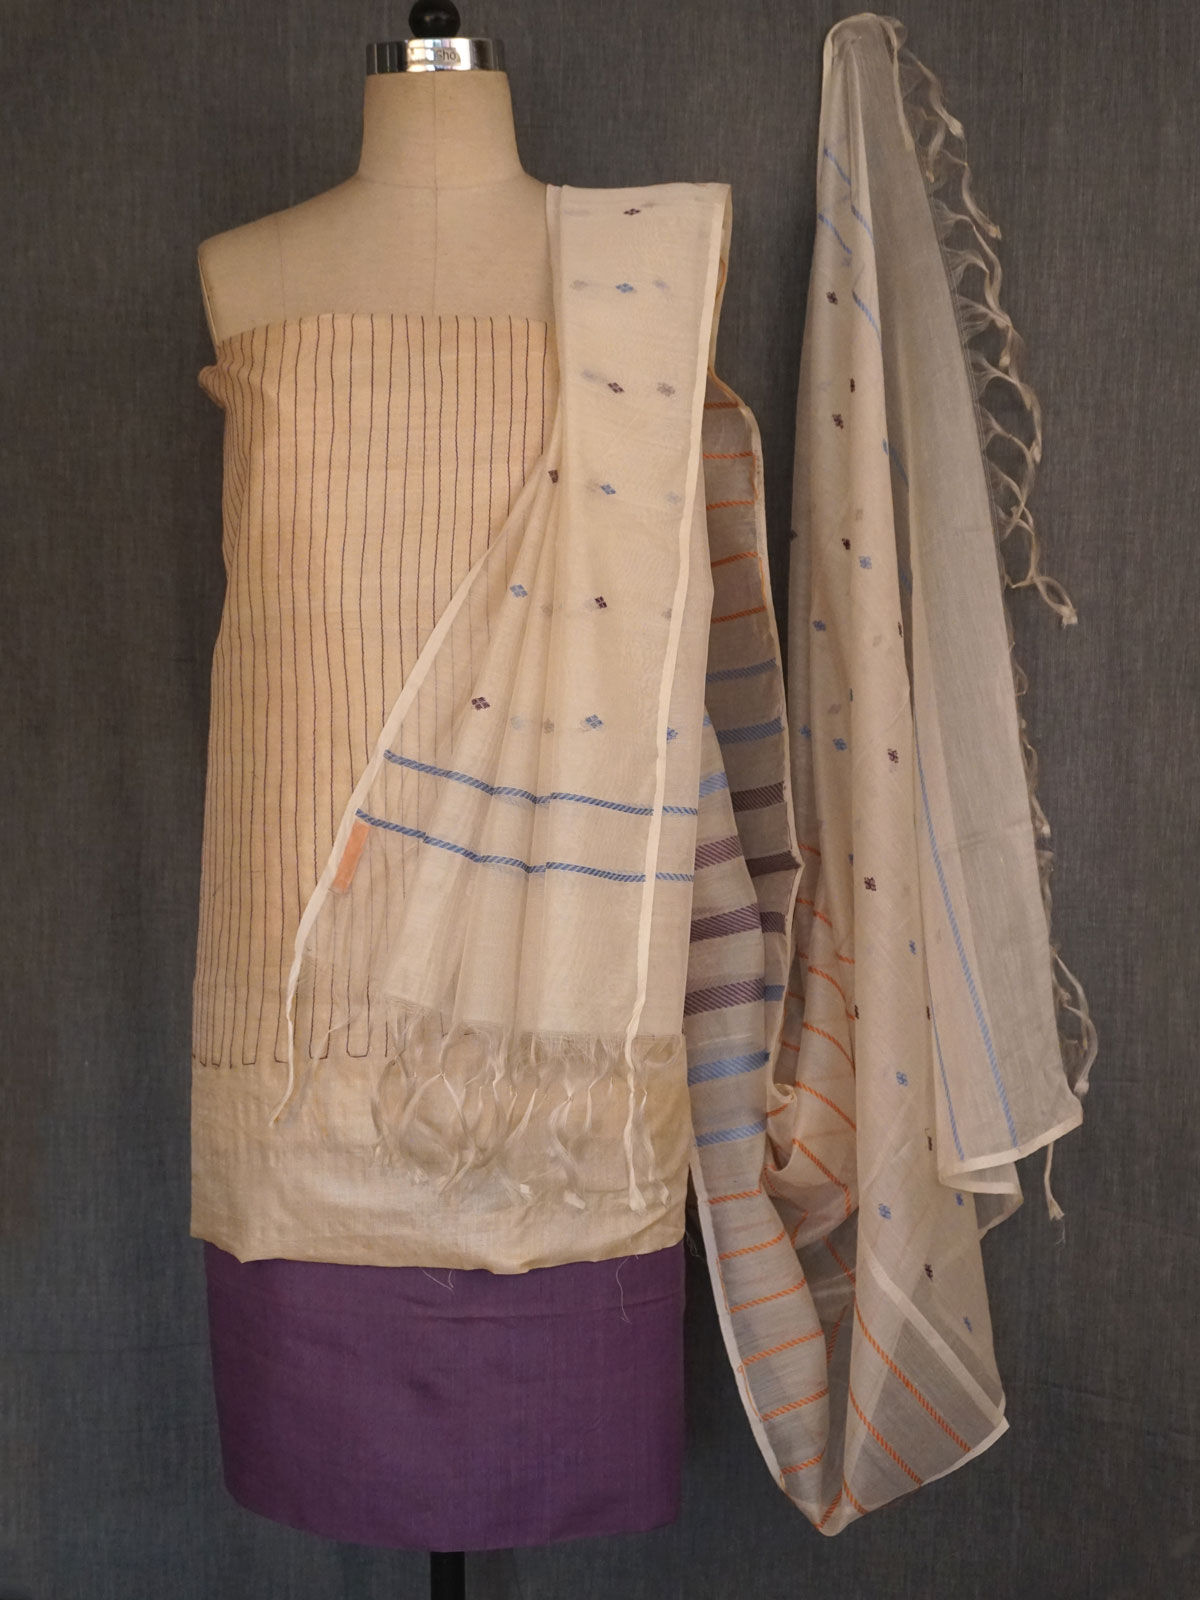 Off white  tusser dress material with purple stitch  lines with woven chanderi dupatta